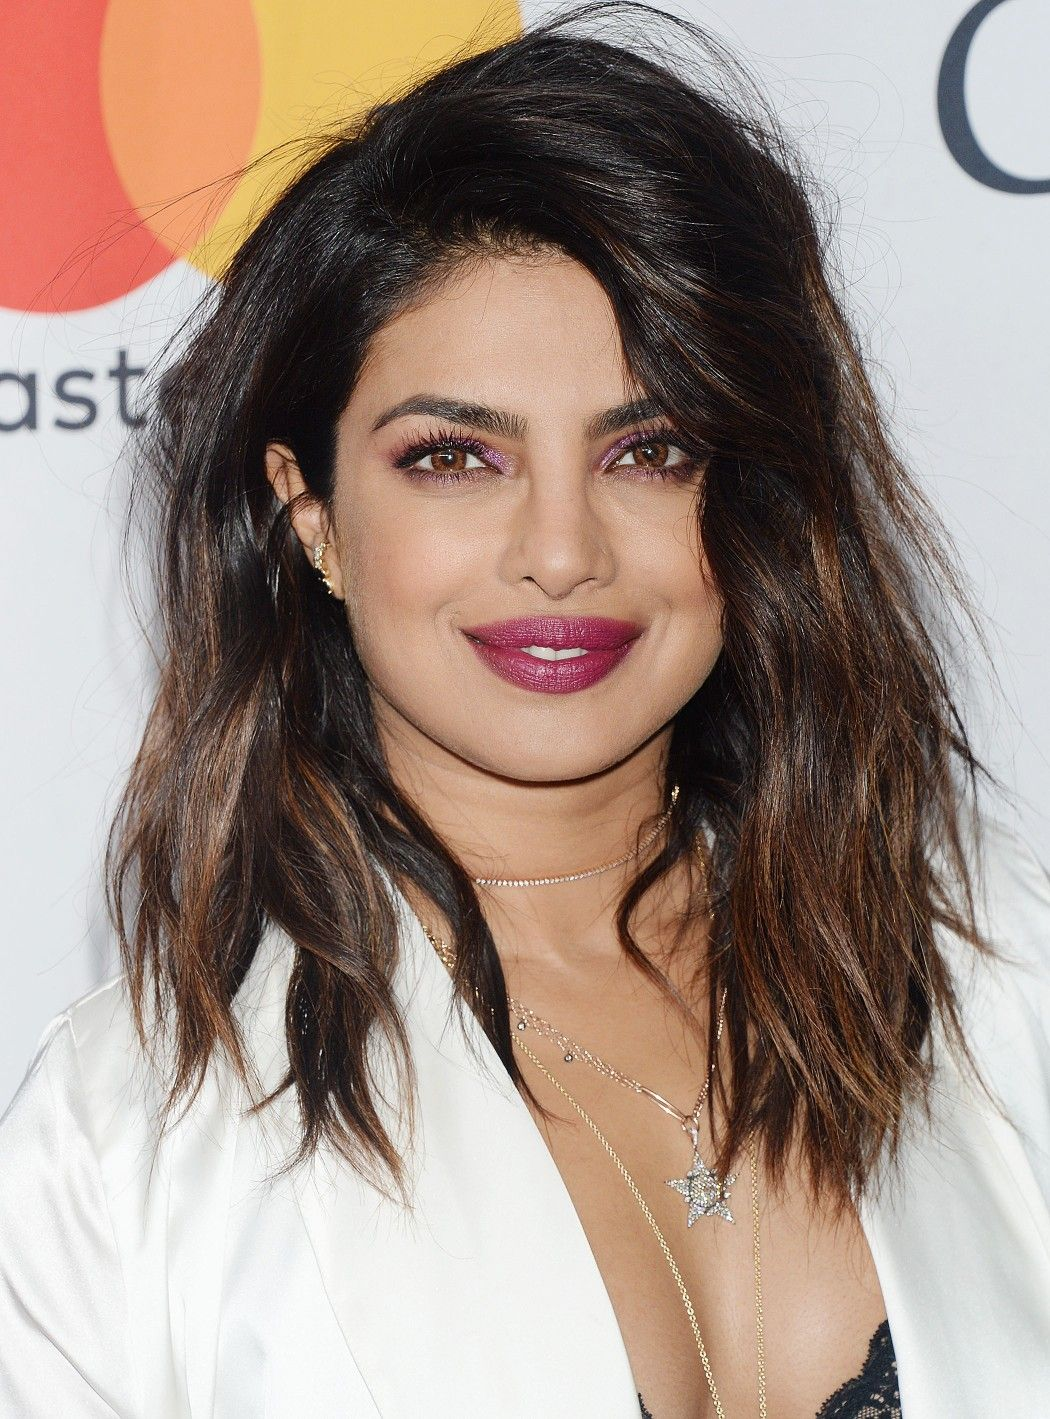 Priyanka Chopra, Age,Height, Figure, Movies, Husband, Instagram & More